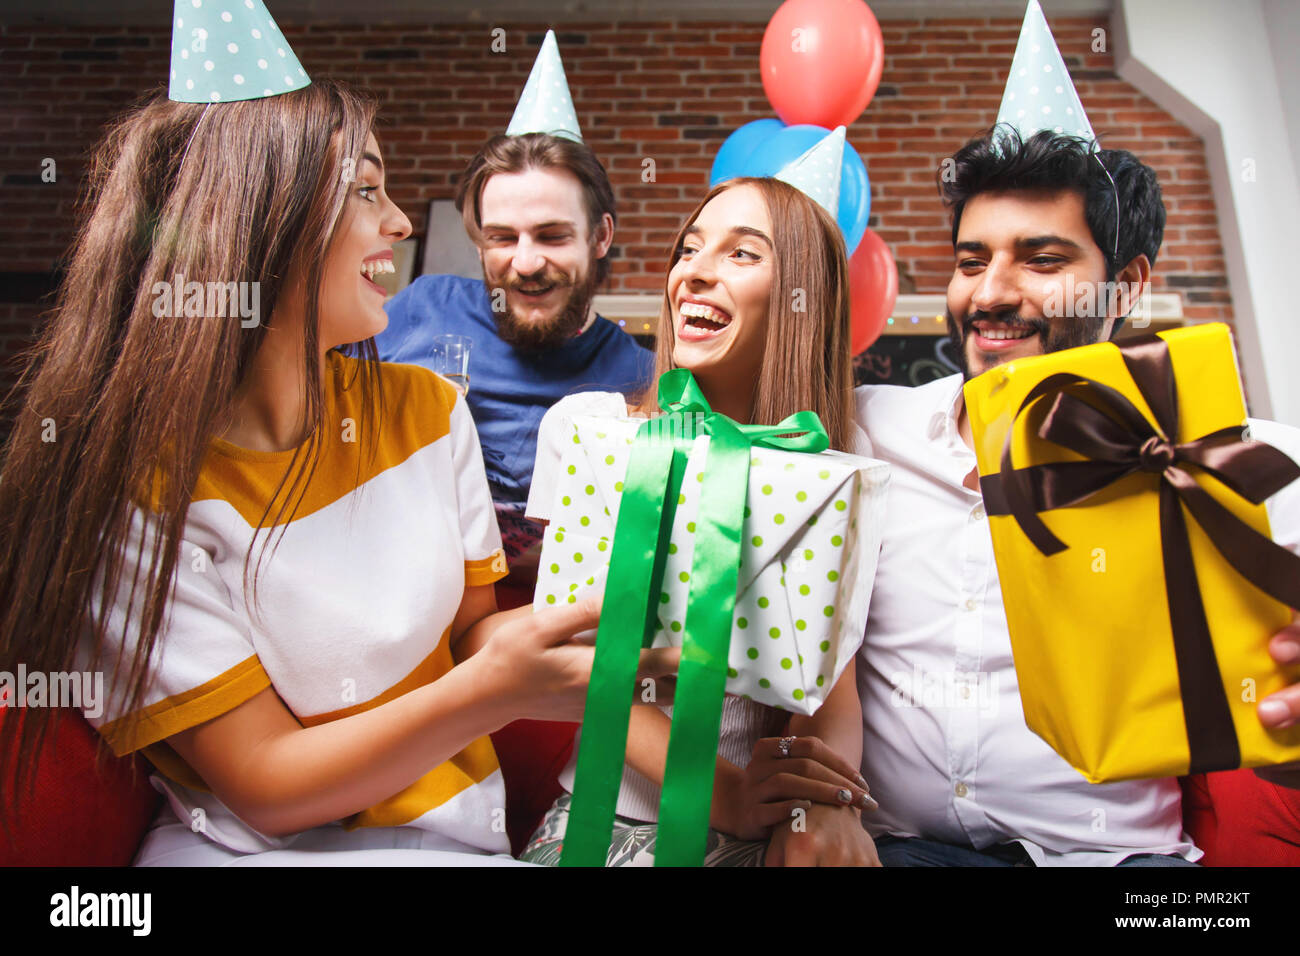 Friends offering gifts to amazing woman in a party hat, they are smiling and laughing a lot - Stock Image